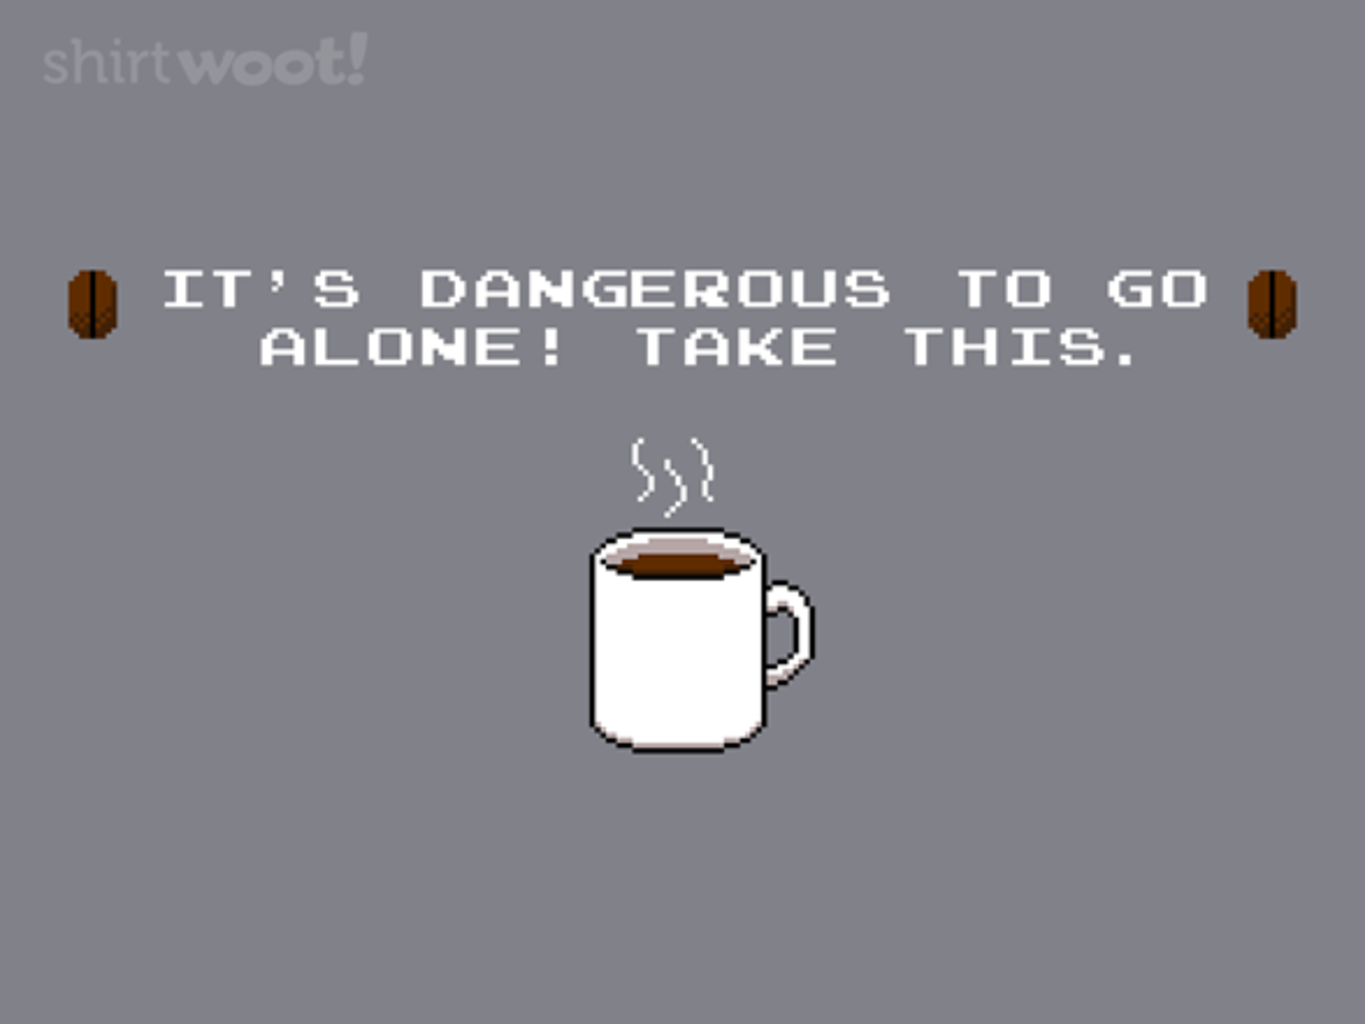 Woot!: Its dangerous. Take this coffee